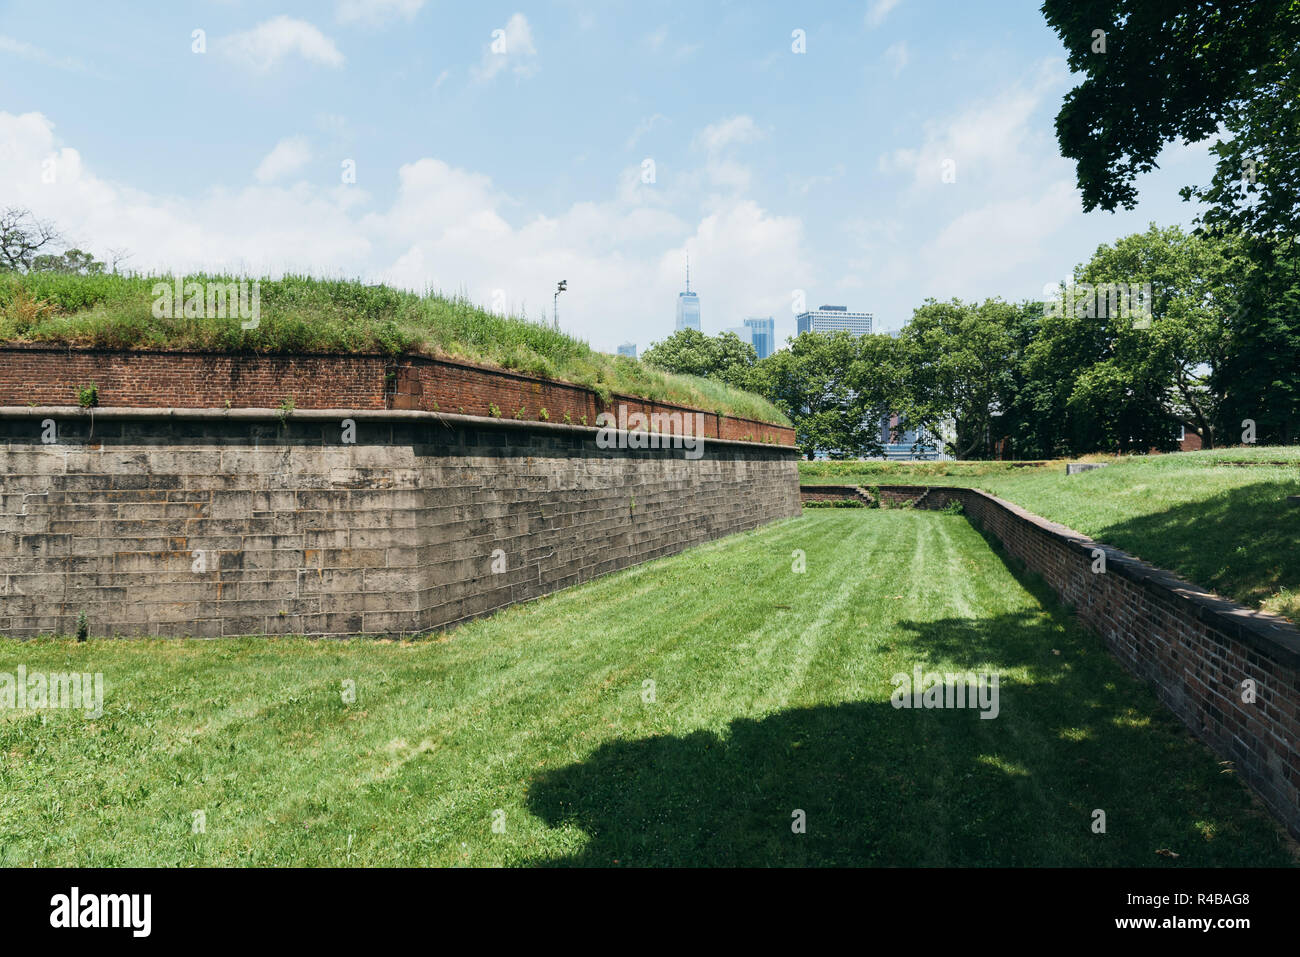 New York City, USA - June 24, 2018: Fort Jay in Governors Island, it is a coastal star fort on Governors Island in New York Harbor - Stock Image